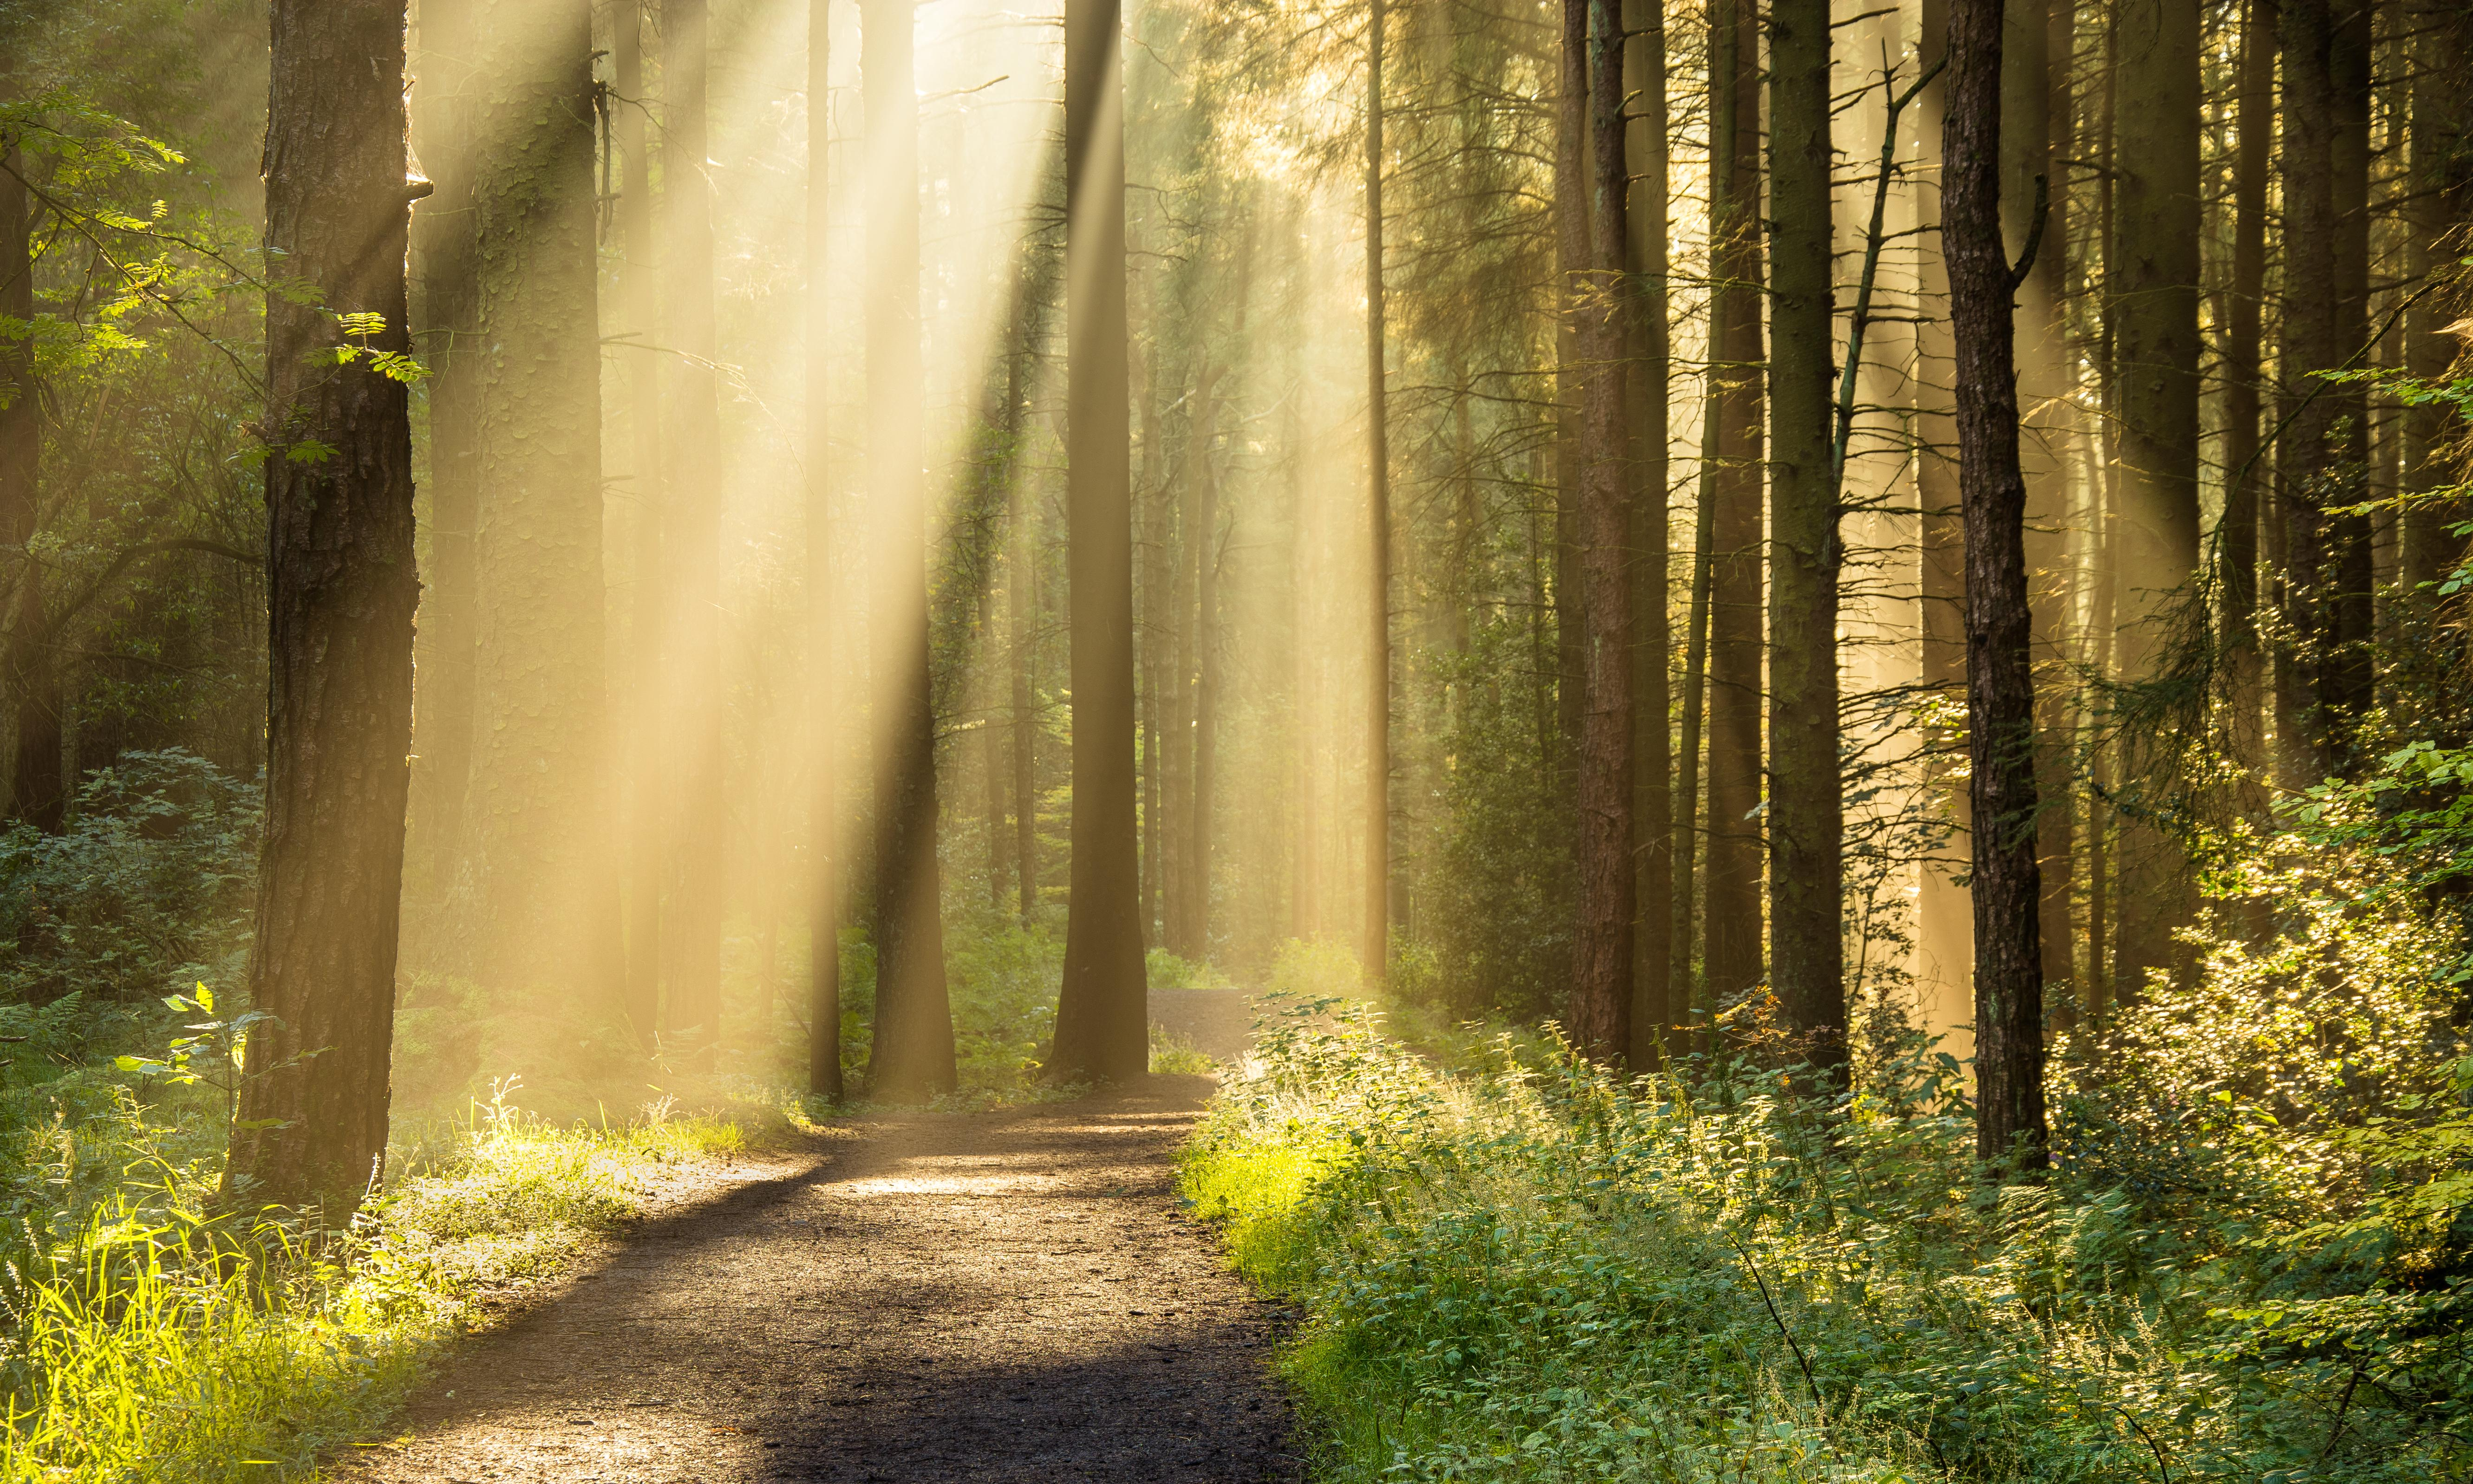 Trees of life: forest bathing blossoms in Britain